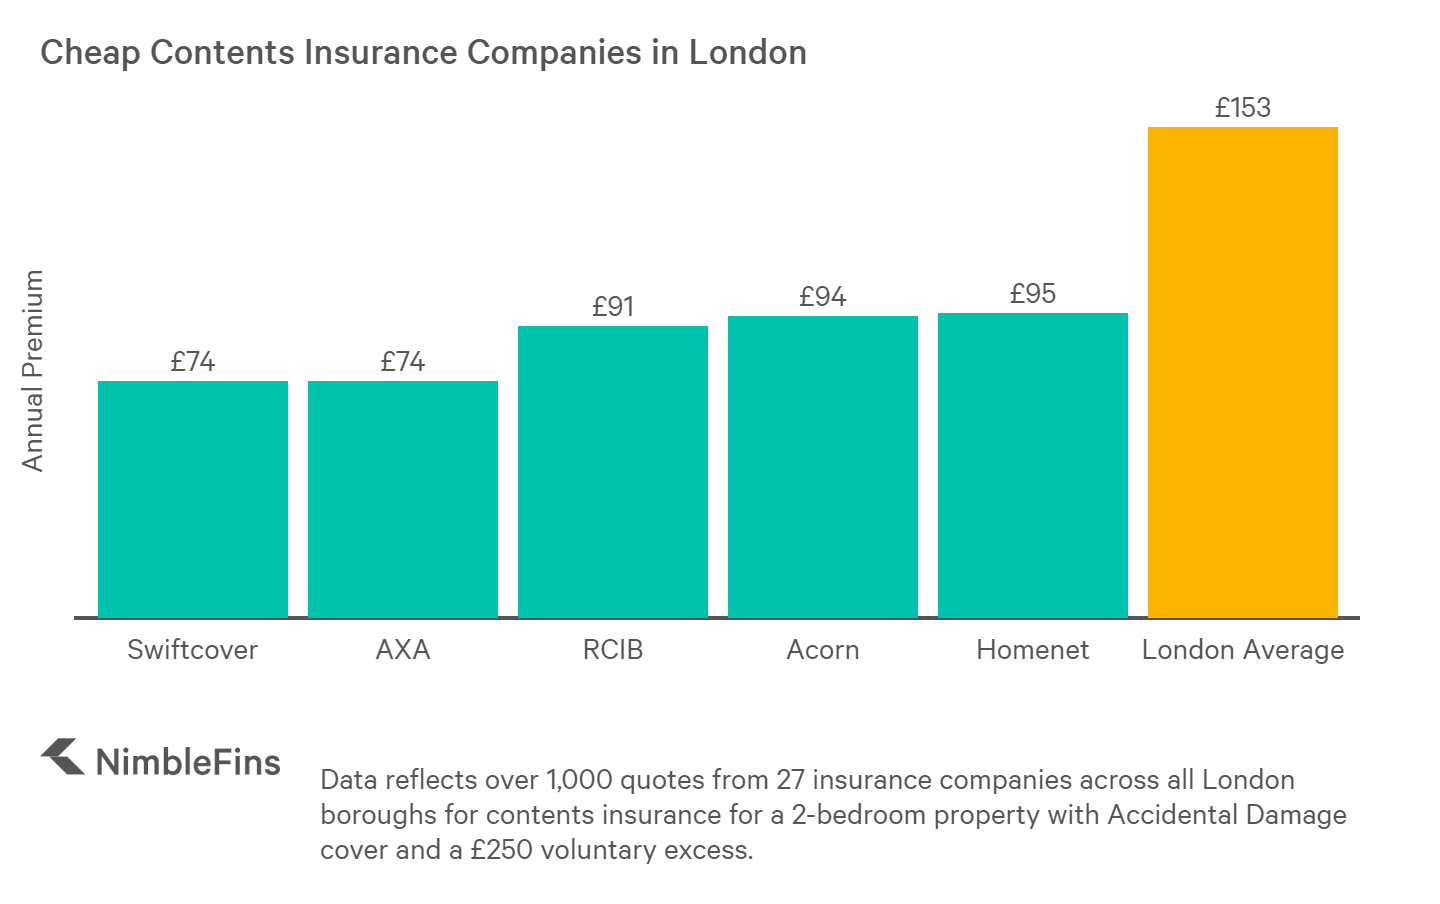 chart showing cheap contents insurance companies in London, England